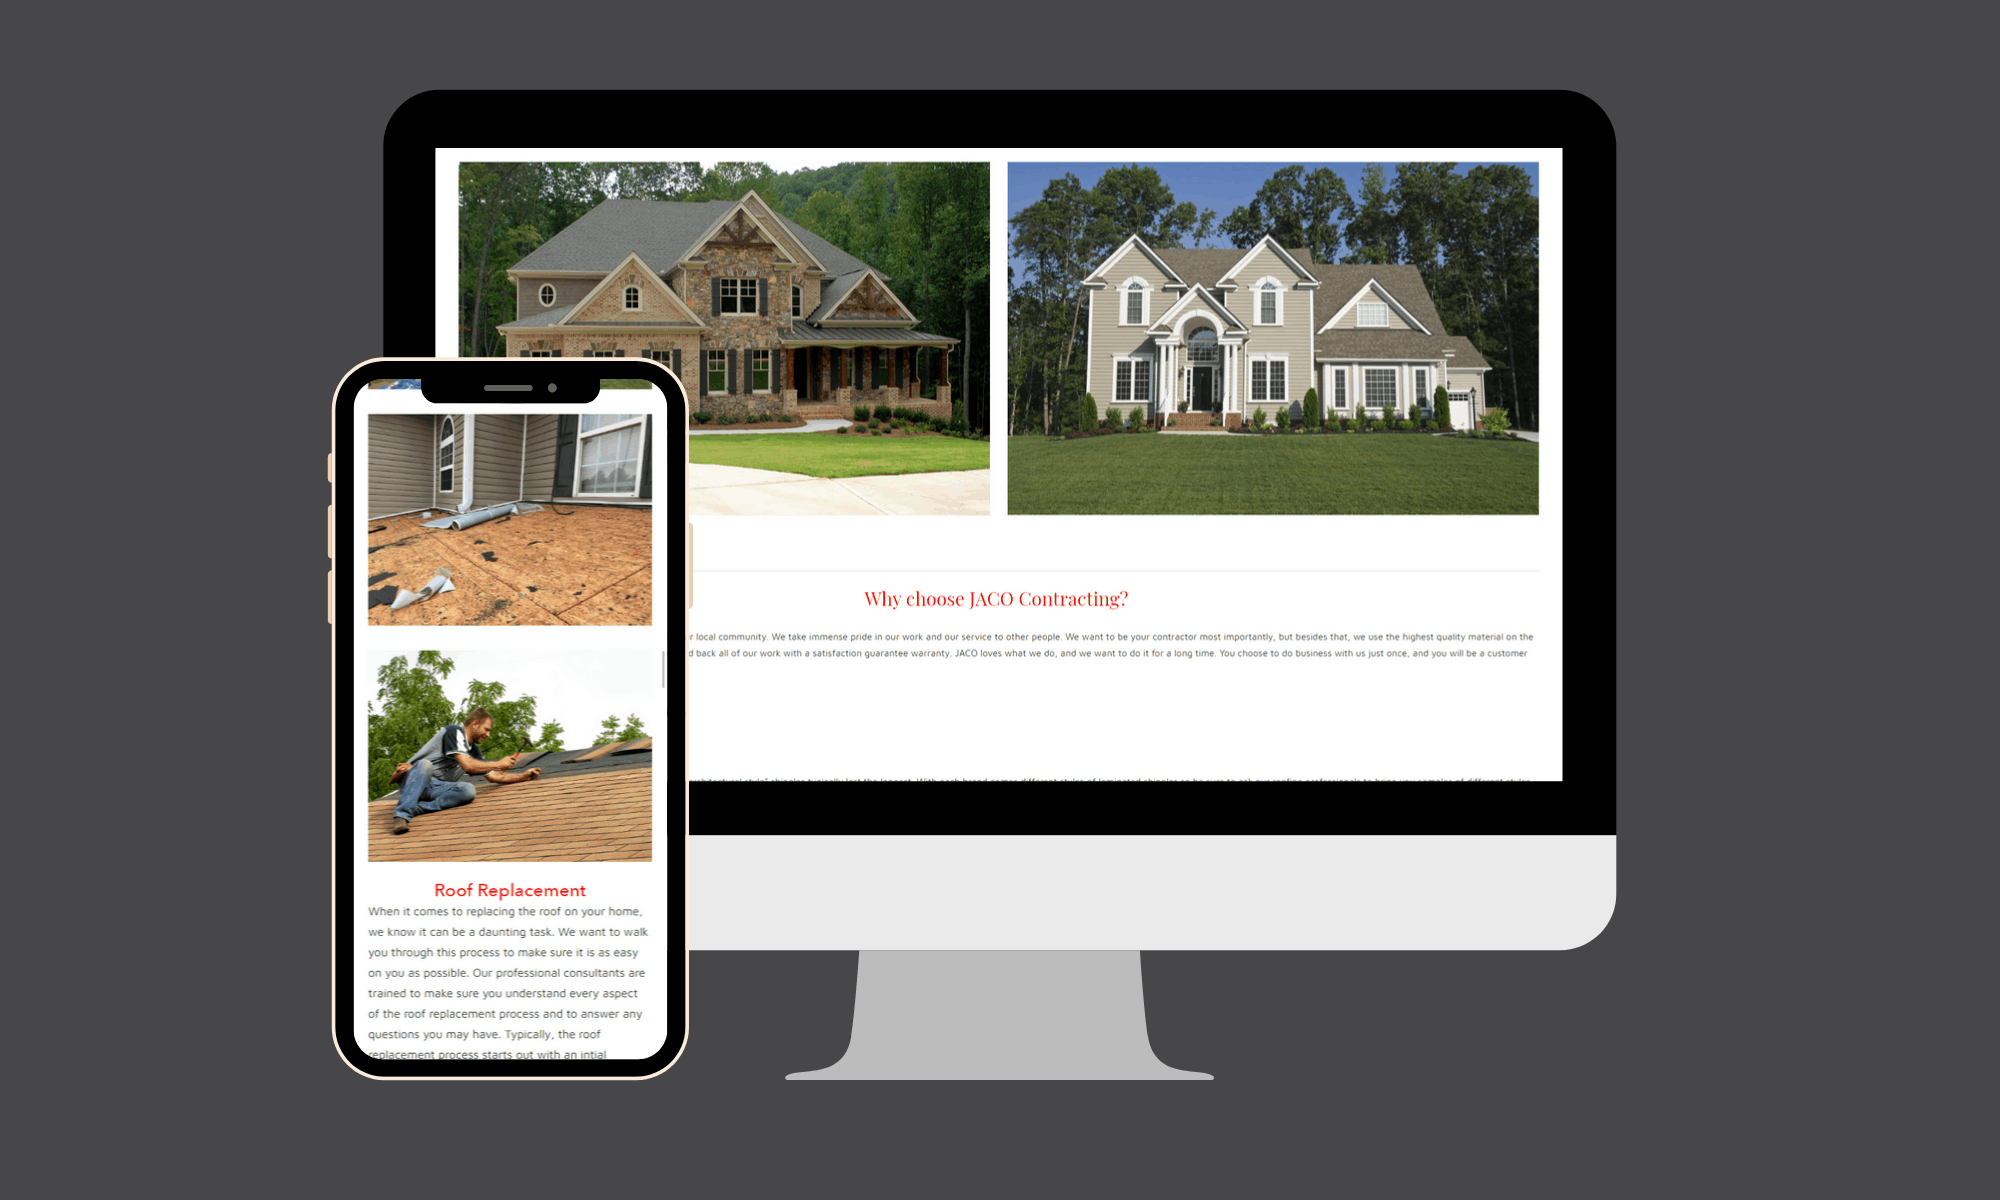 Search engine optimization and reputation management services for this Georgia based roofing company generated tremendous business growth.